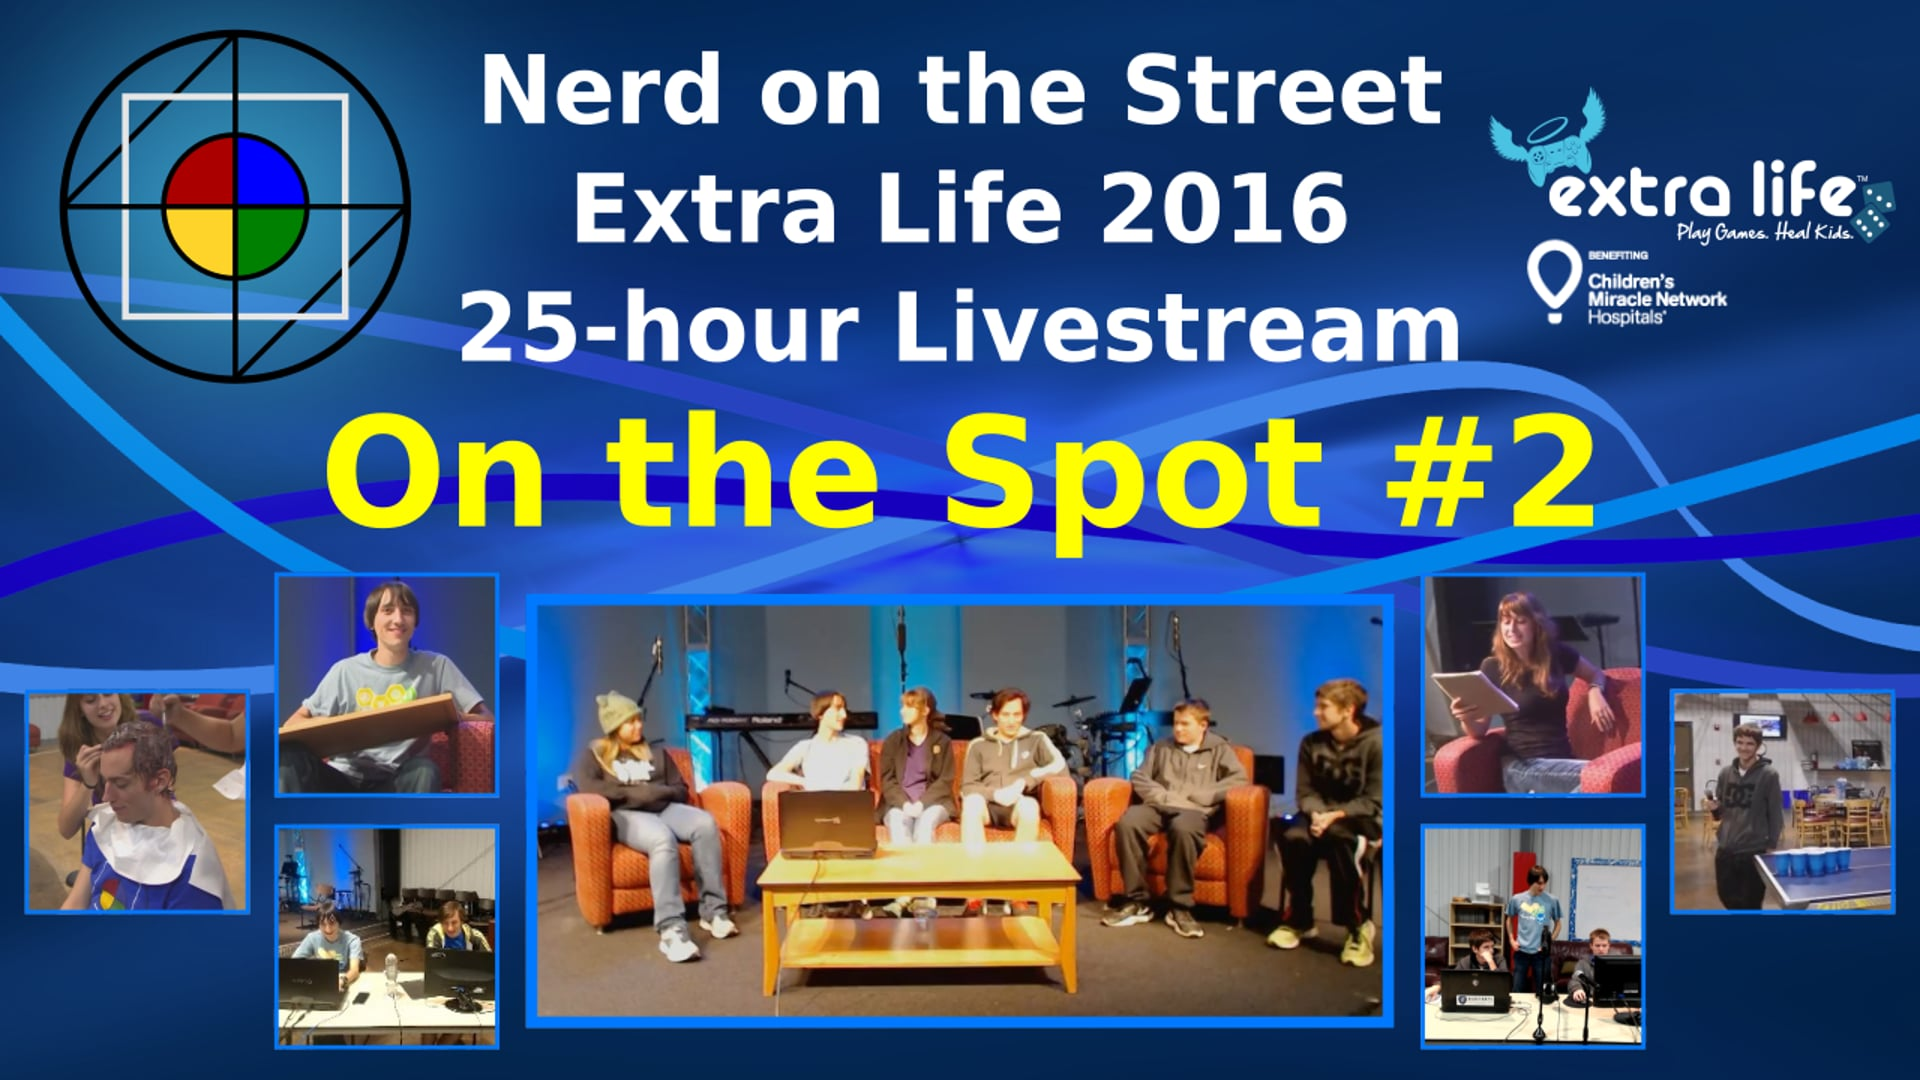 On the Spot, Episode 2 - Extra Life 2016